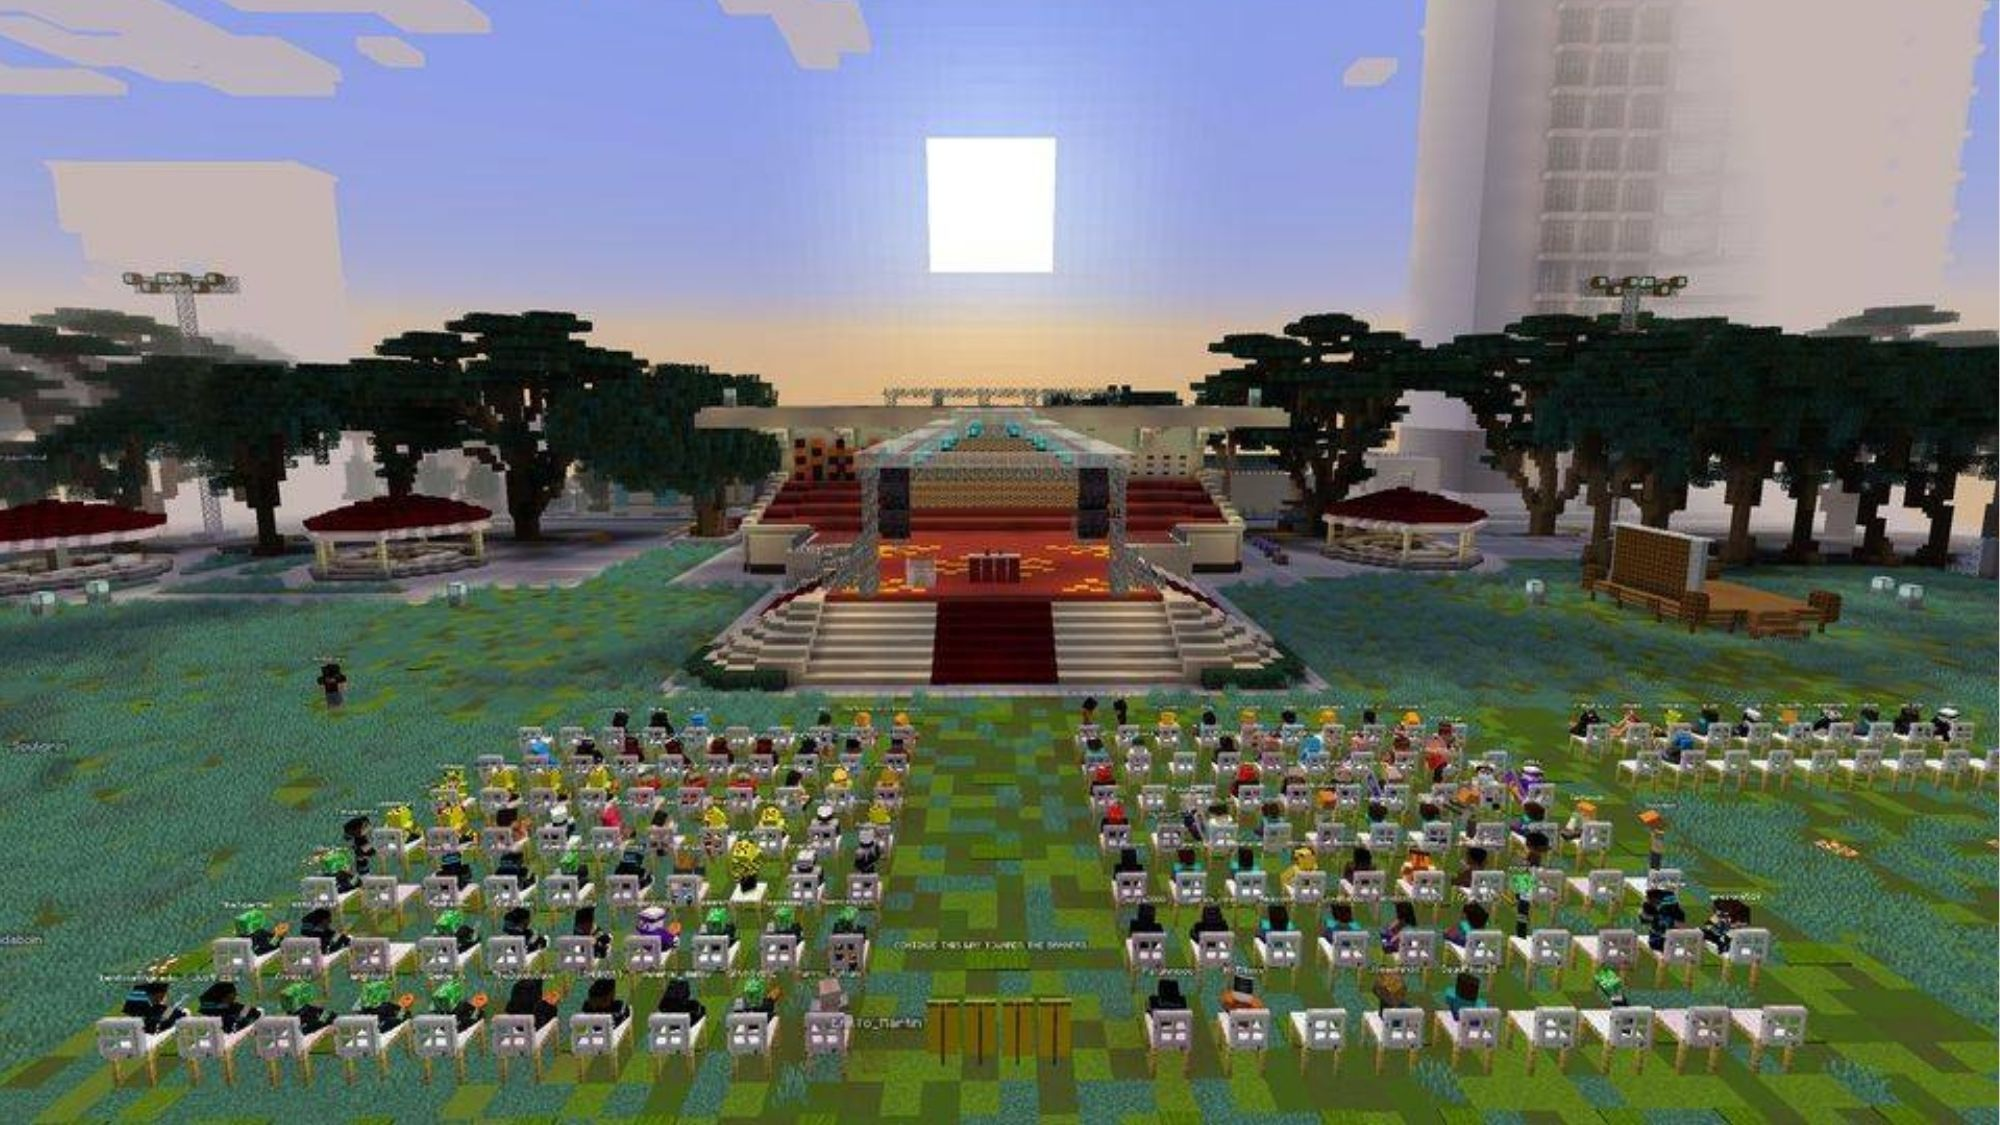 A different kind of commencement rites; UST graduates march virtually on Minecraft photo from Manila Bulletin